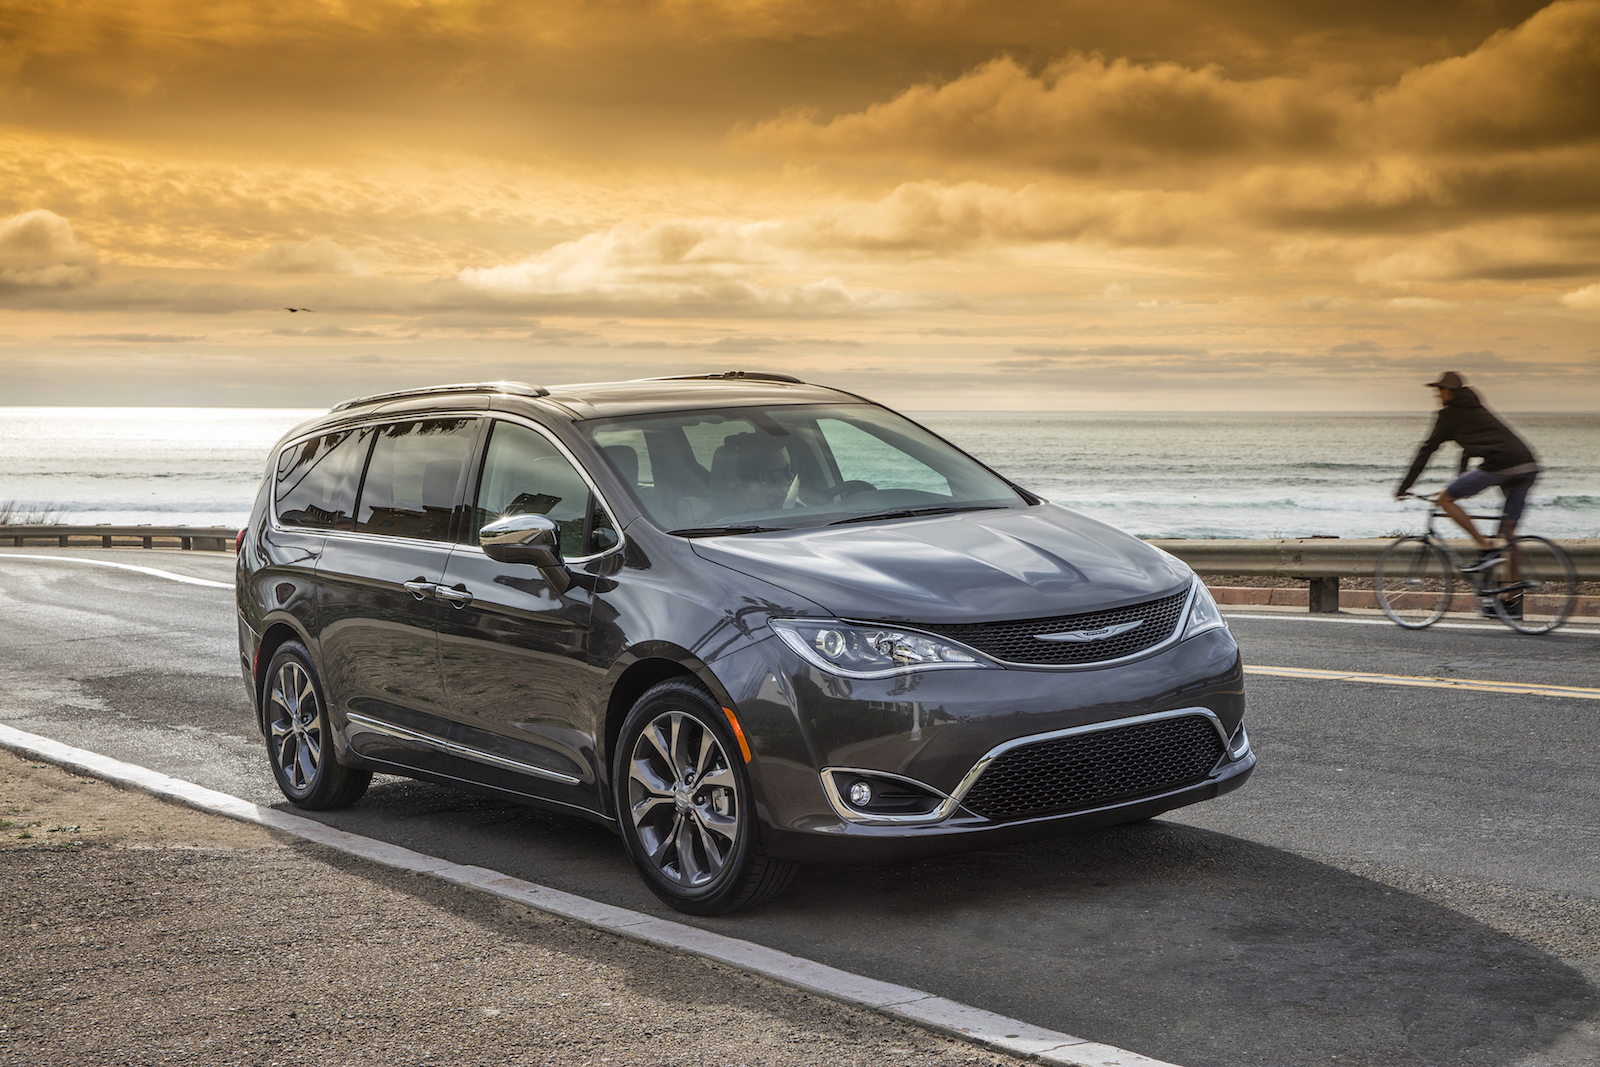 8 Passenger Suv >> 2017 Chrysler Pacifica Styling Review - The Car Connection